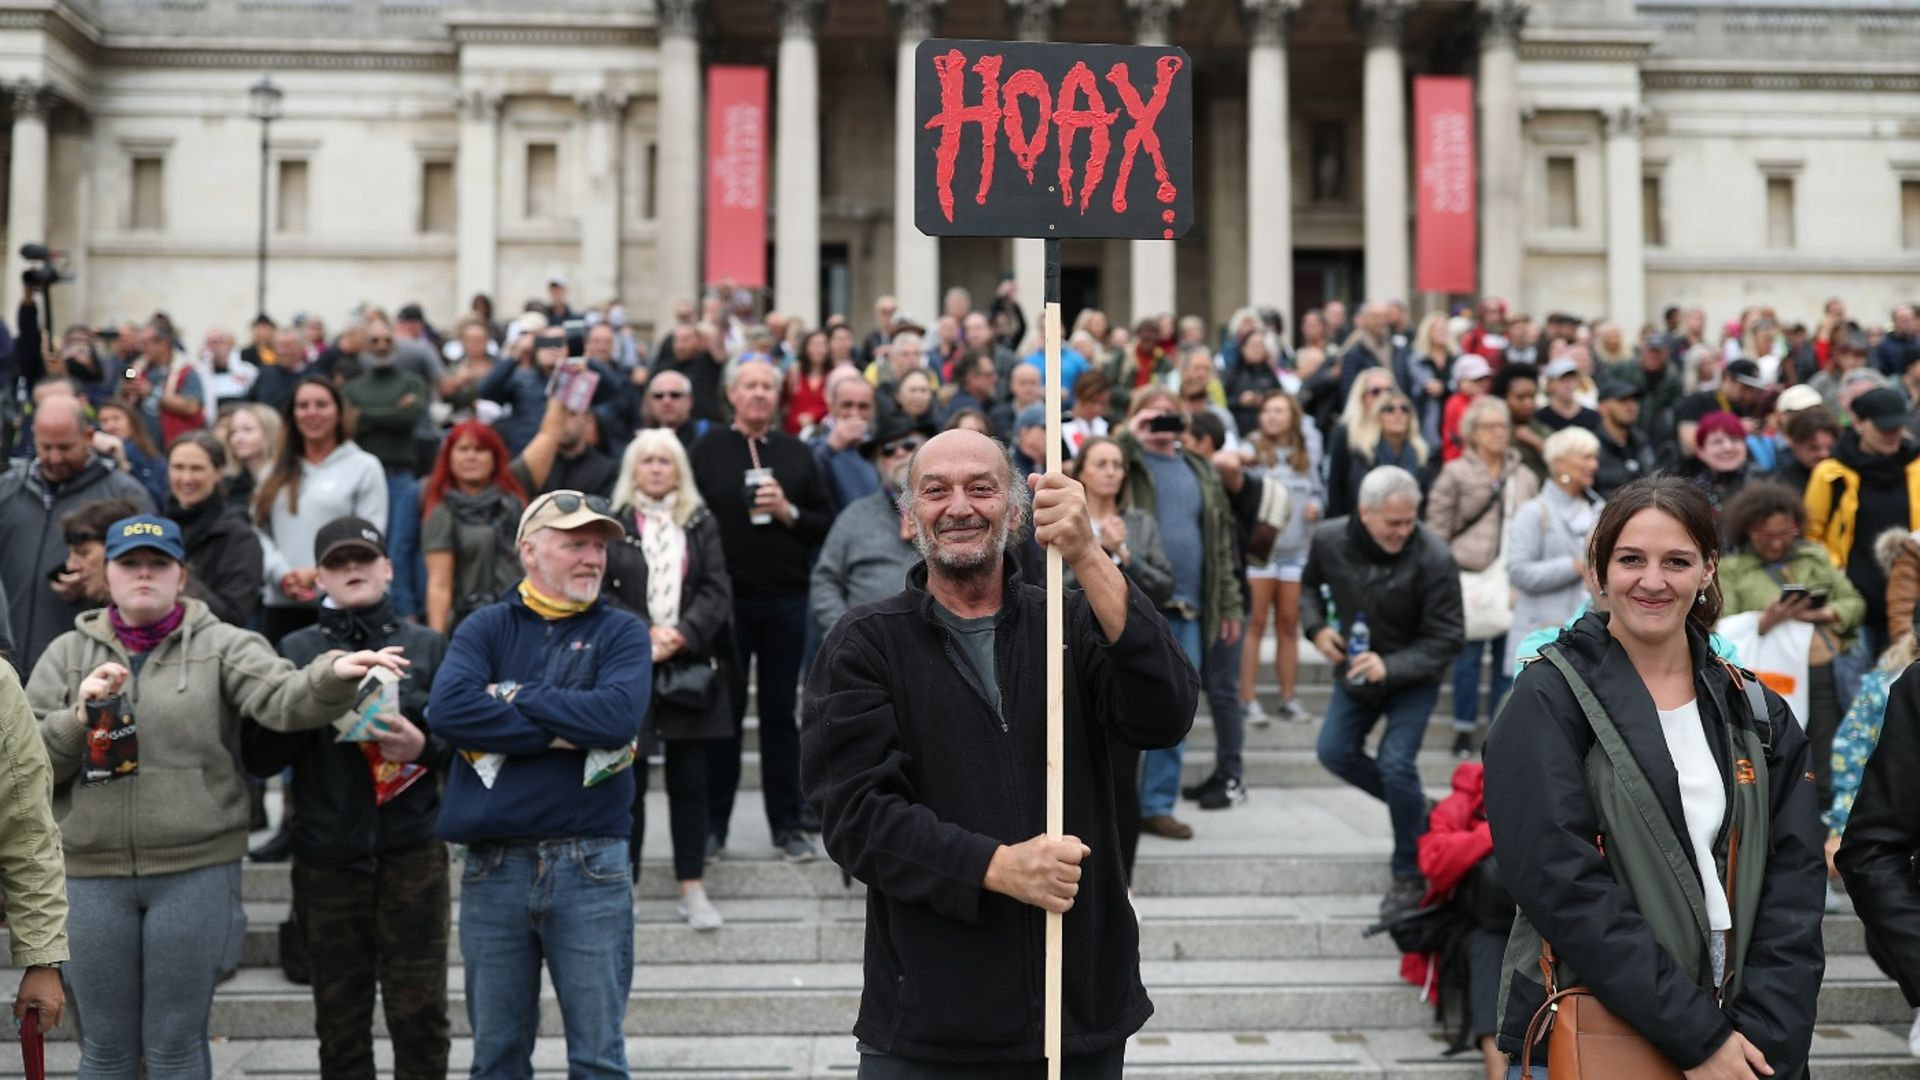 Anti-lockdown protesters, who believe that the coronavirus pandemic is a hoax, gather at the 'Unite For Freedom' rally in Trafalgar Square. - Credit: Yui Mok/PA.